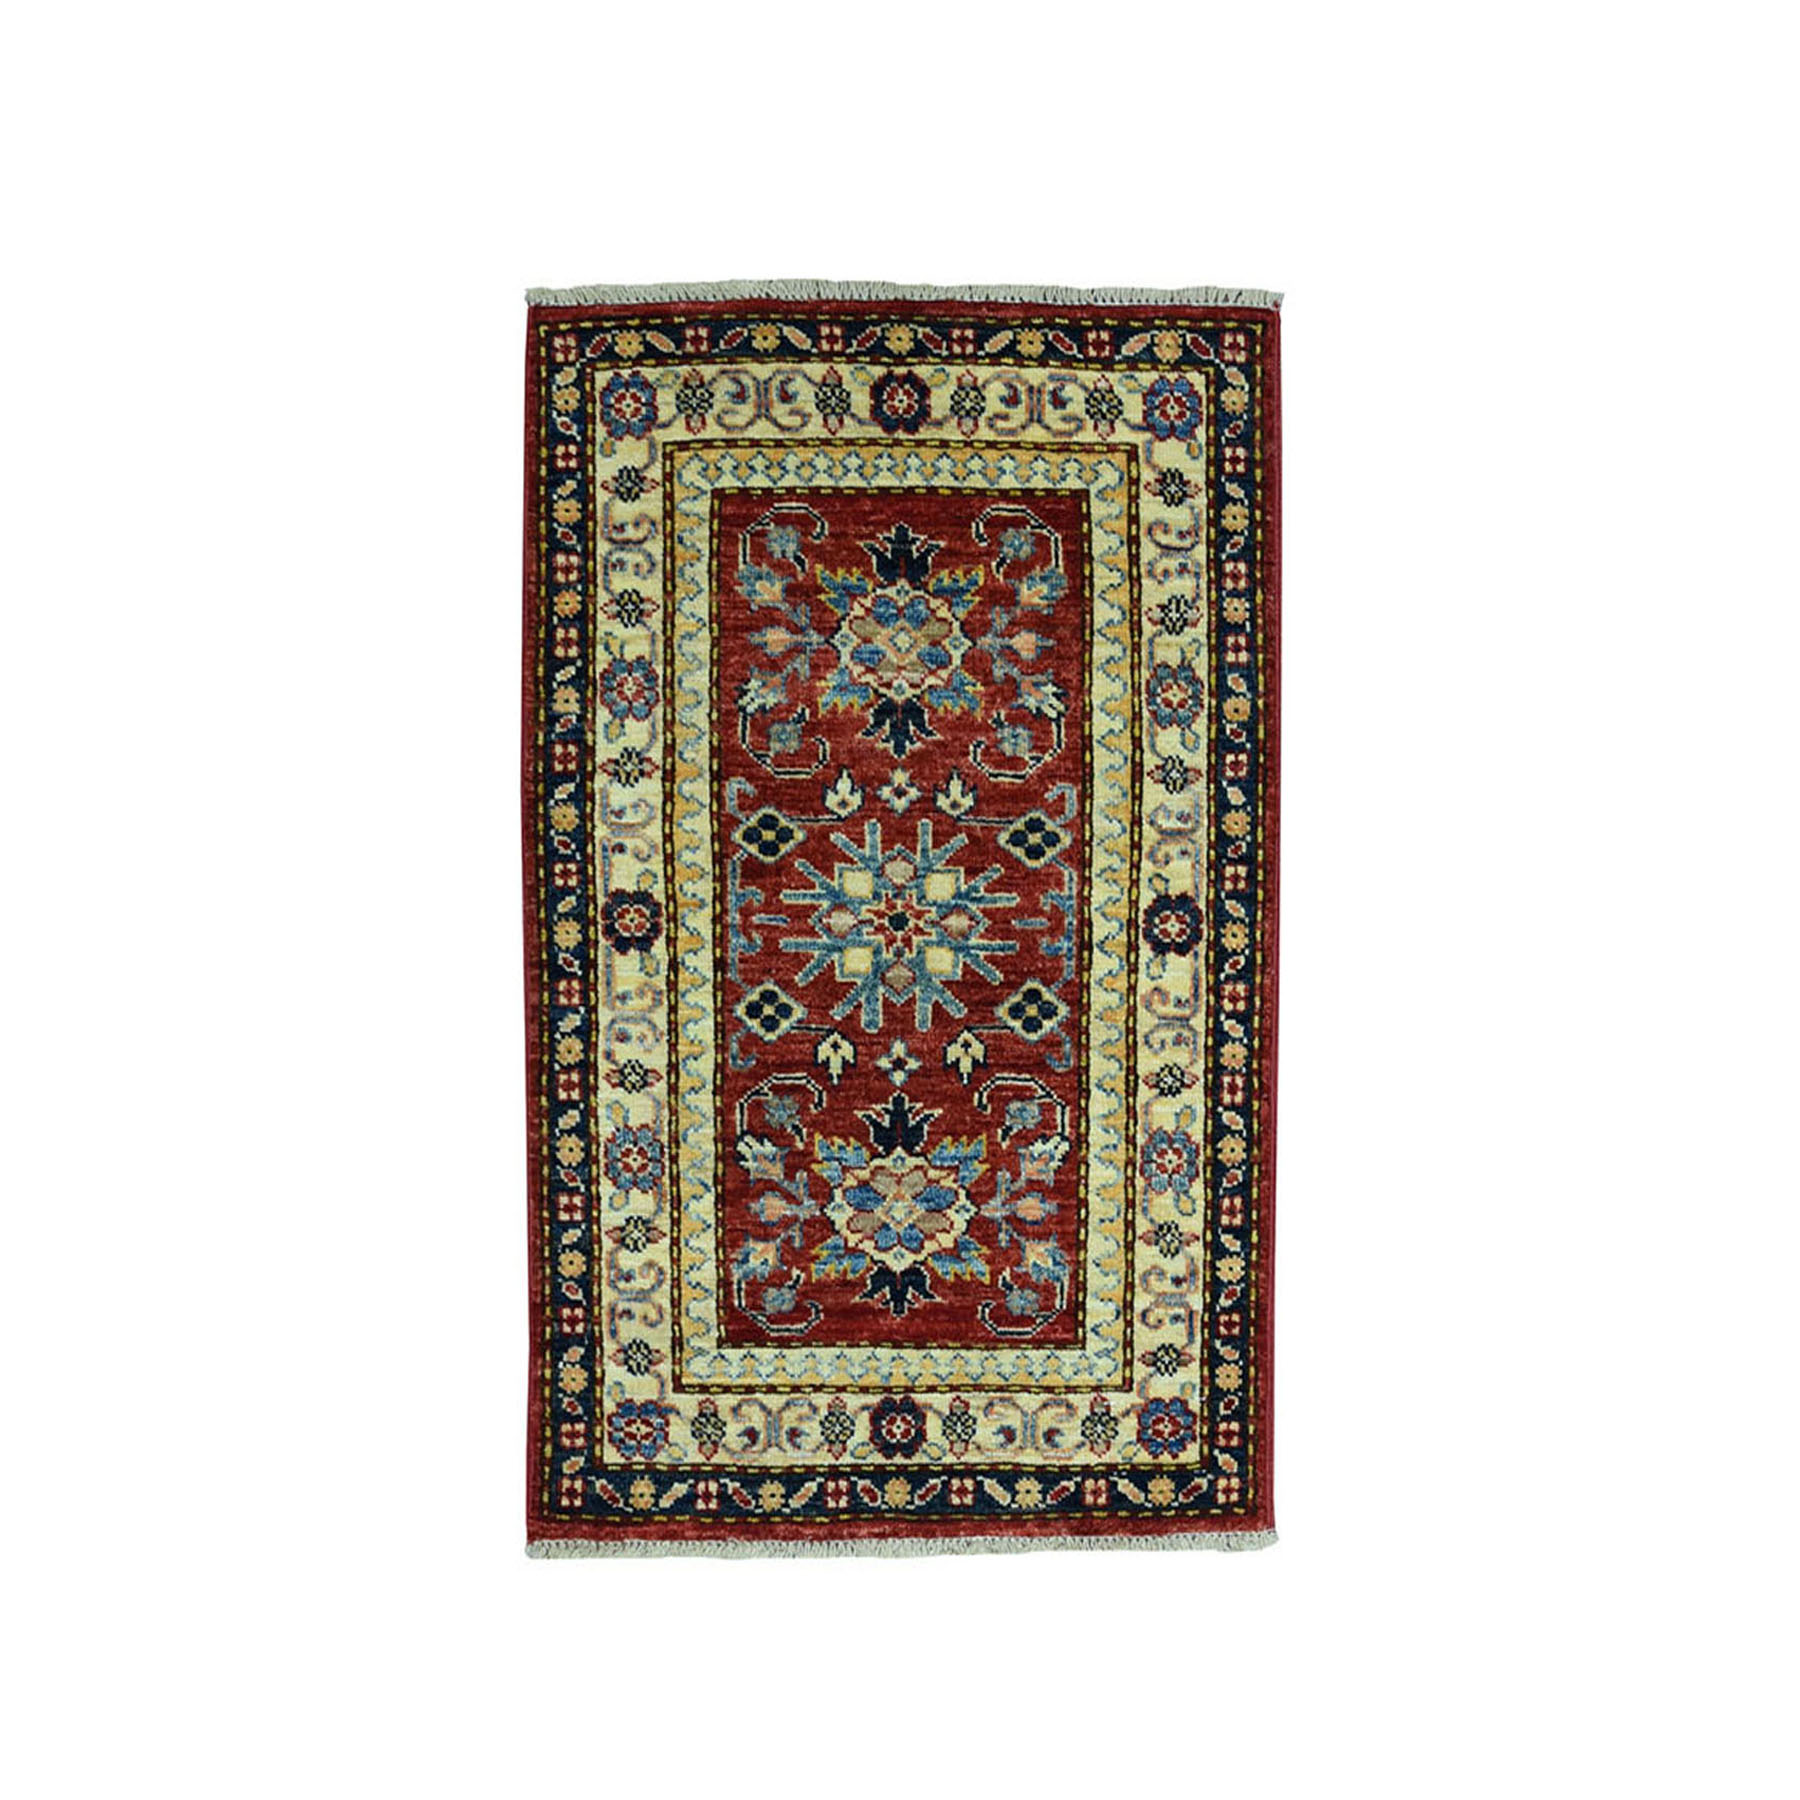 2'X3' Red Super Kazak Pure Wool Geometric Design Hand-Knotted Oriental Rug moae09bc